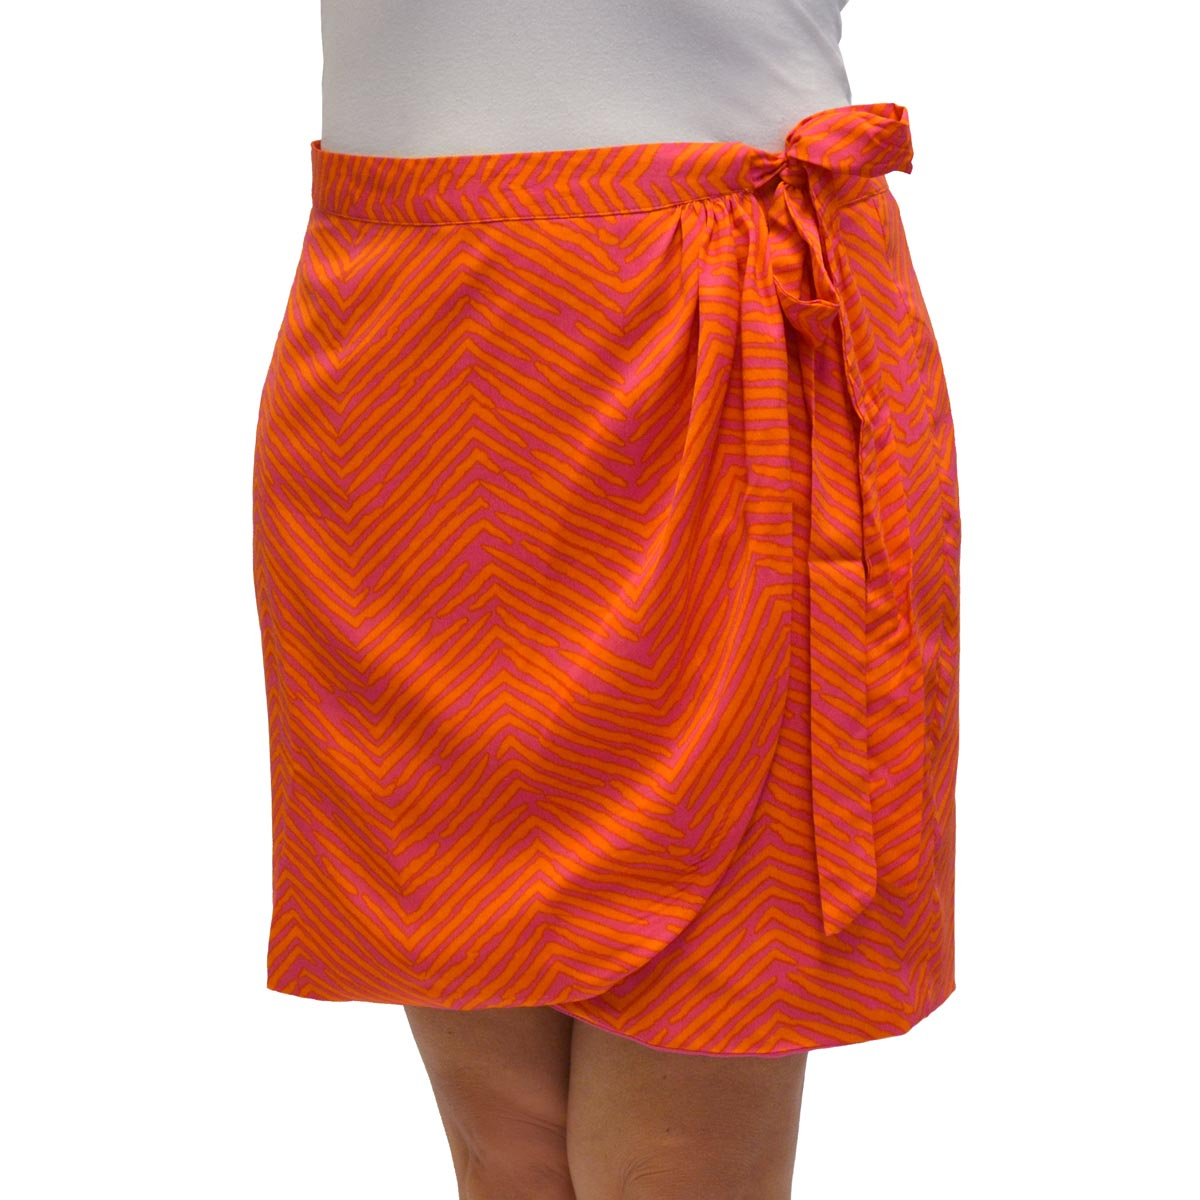 tweedle d pink/orange wrap around skirt